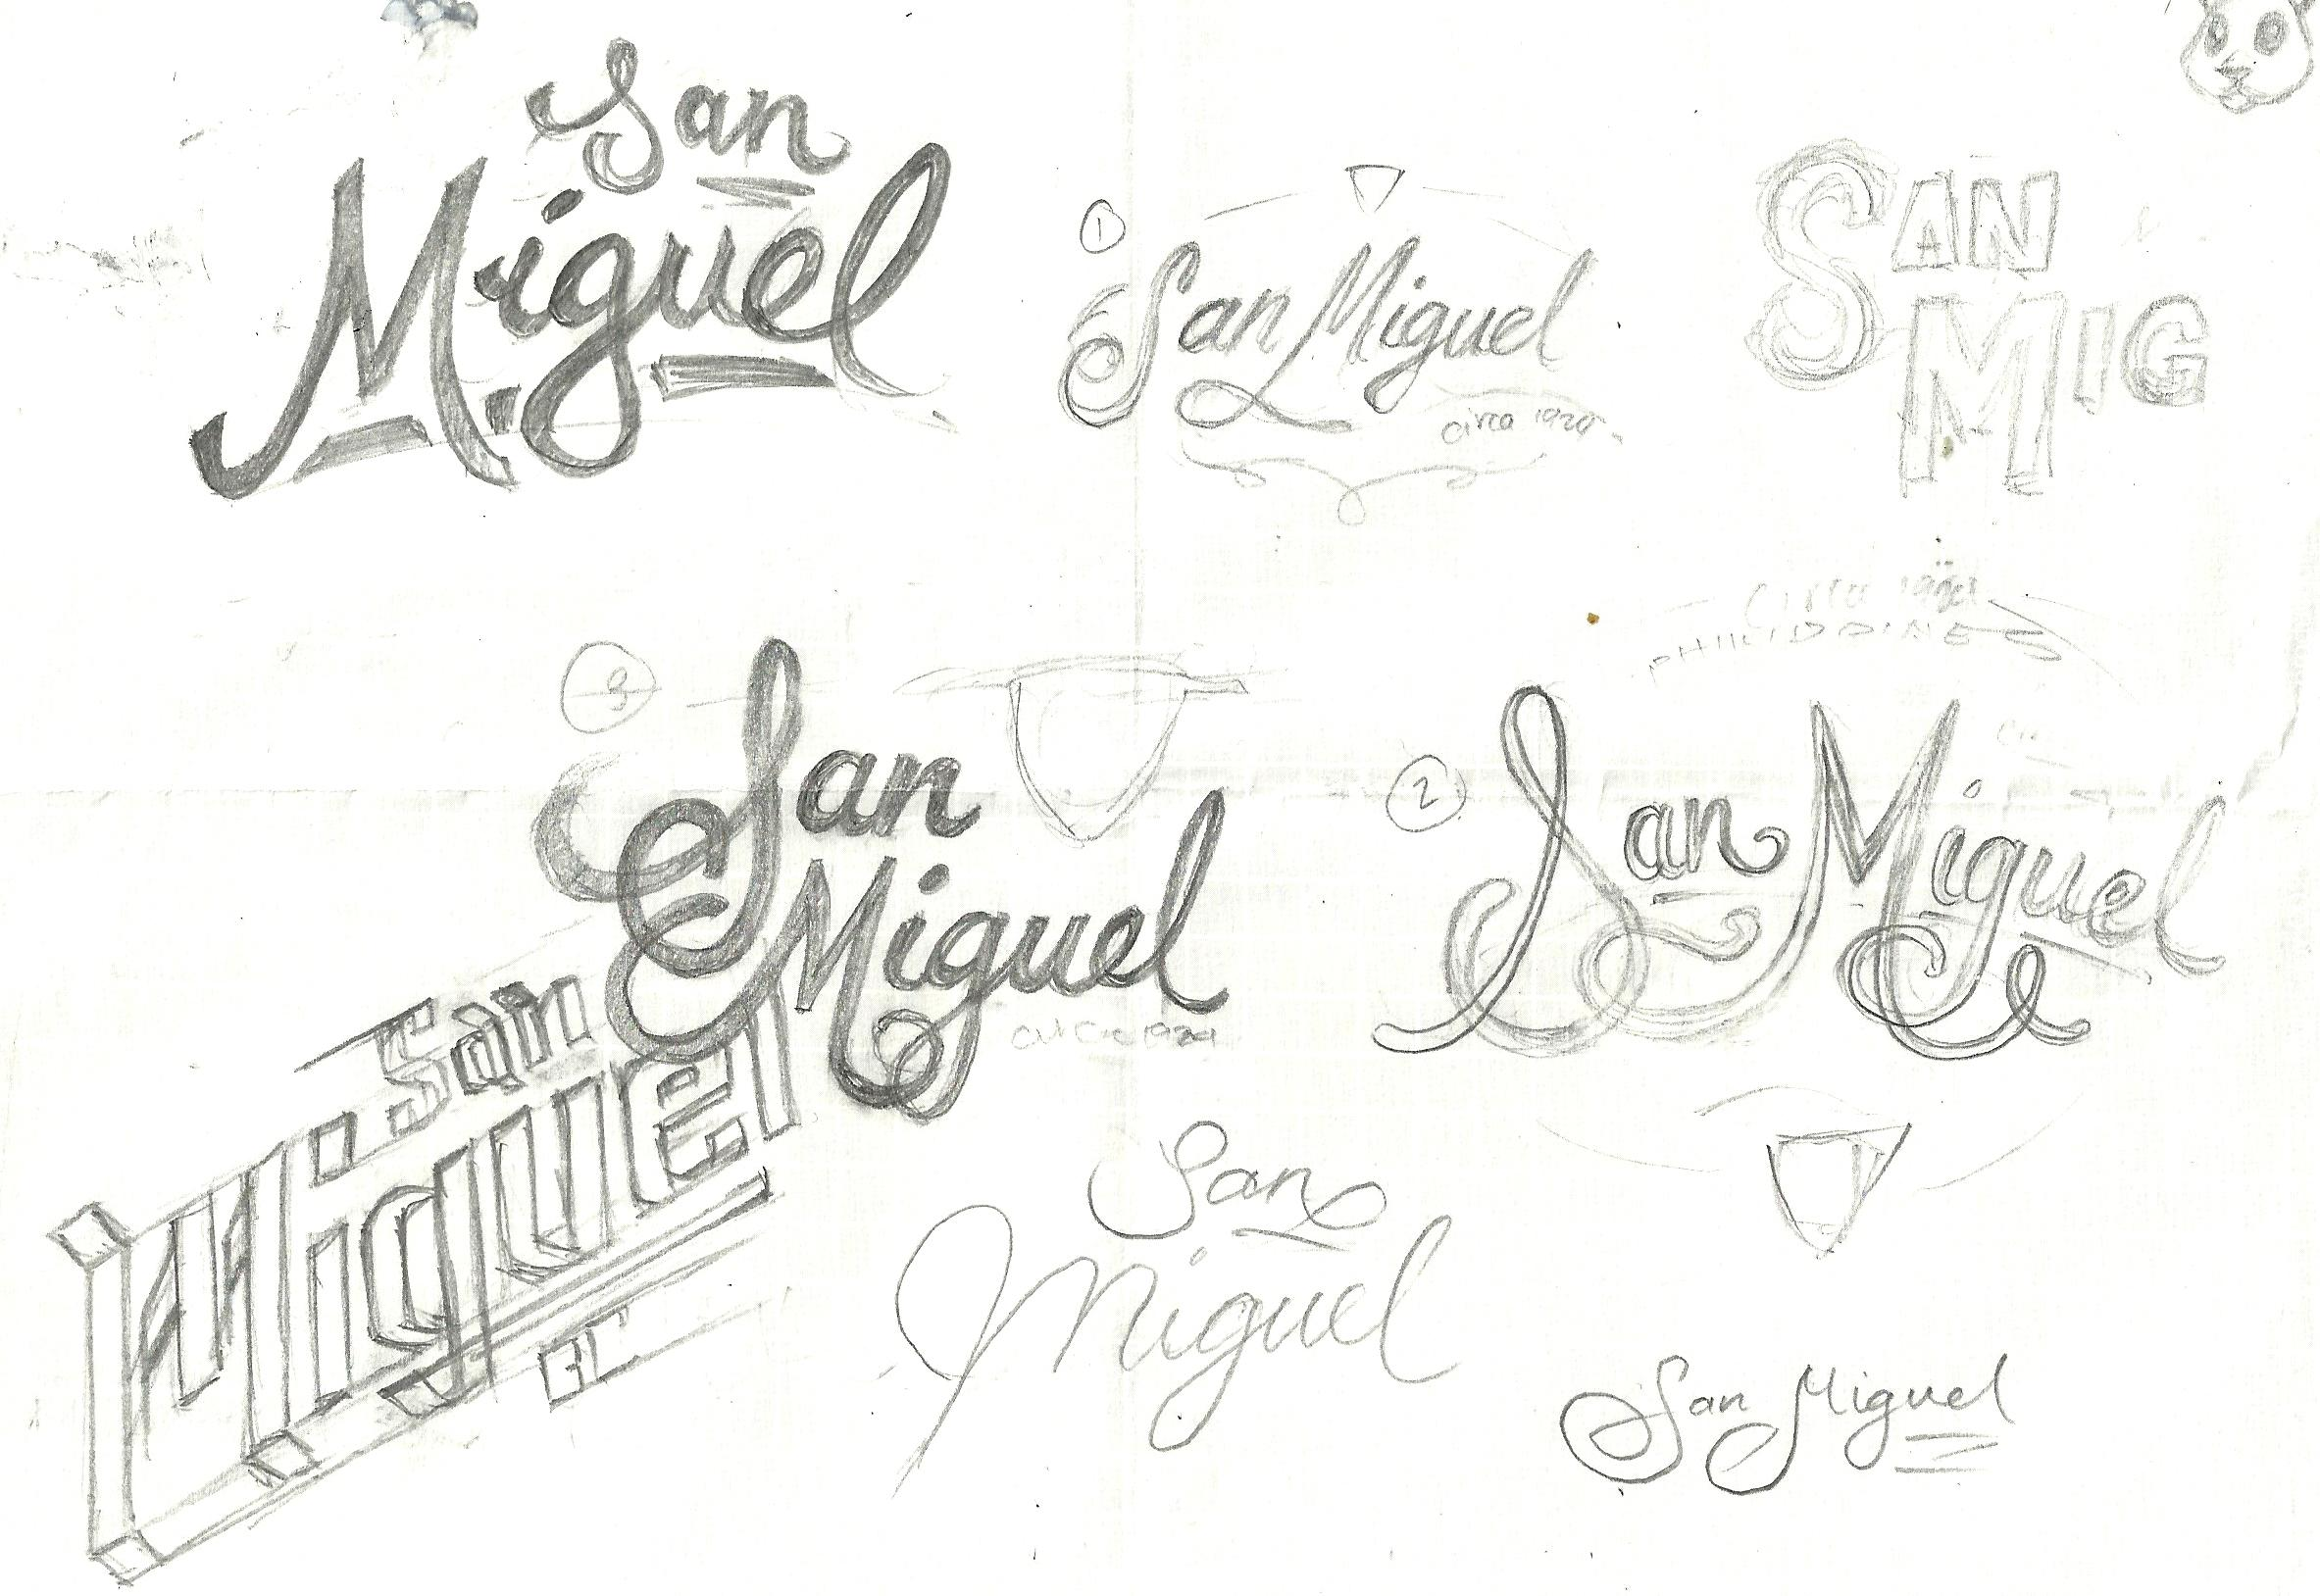 San Miguel Beer - image 1 - student project